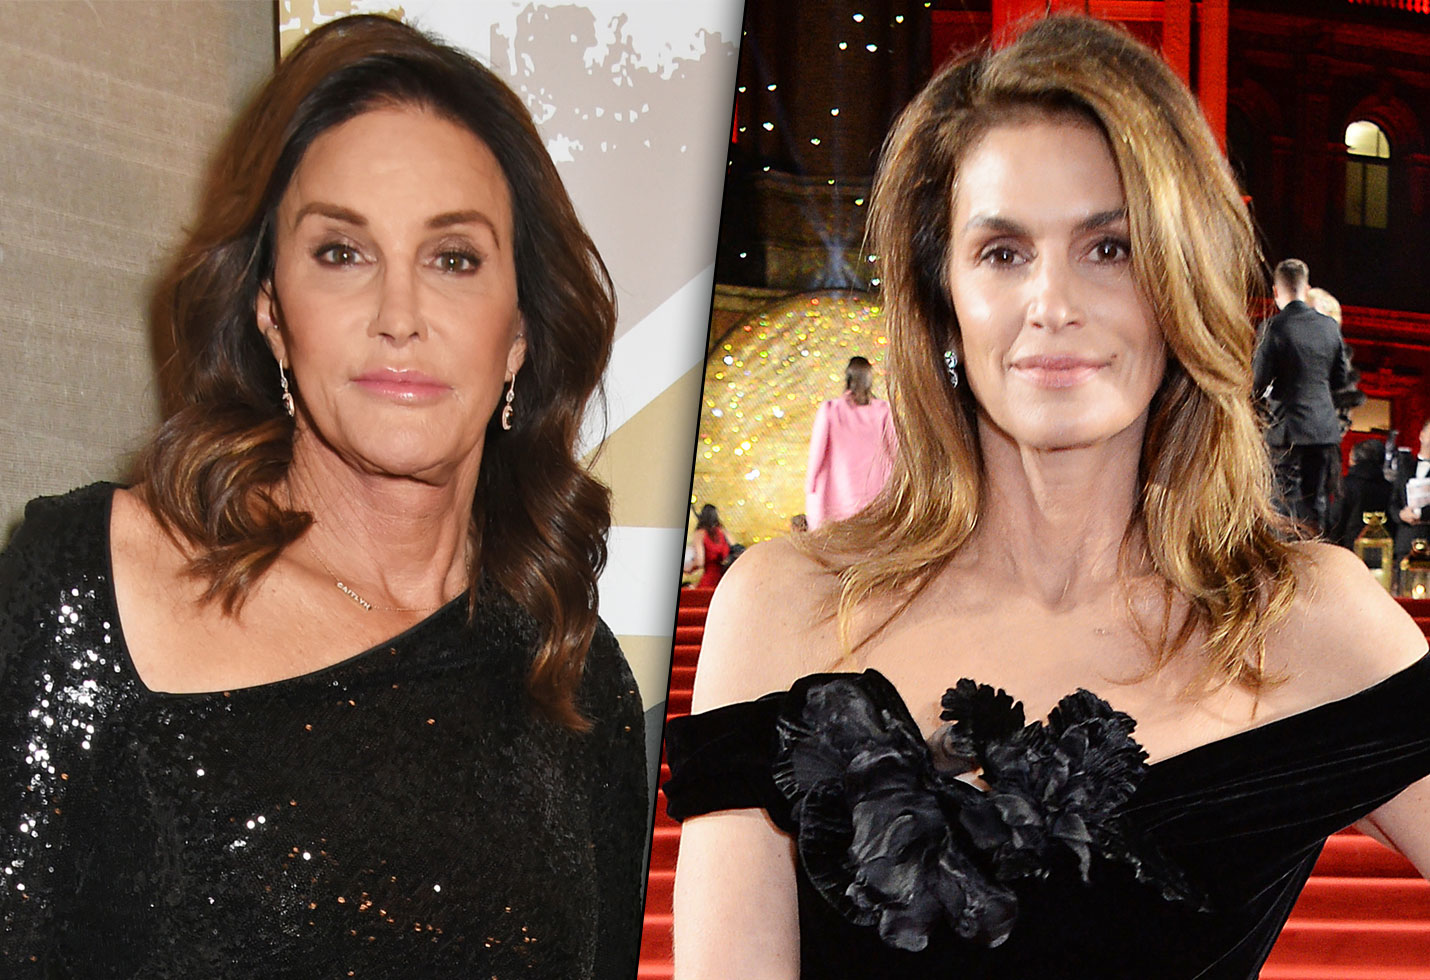 Pictures Caitlyn Jenner naked (79 photos), Topless, Cleavage, Instagram, underwear 2006